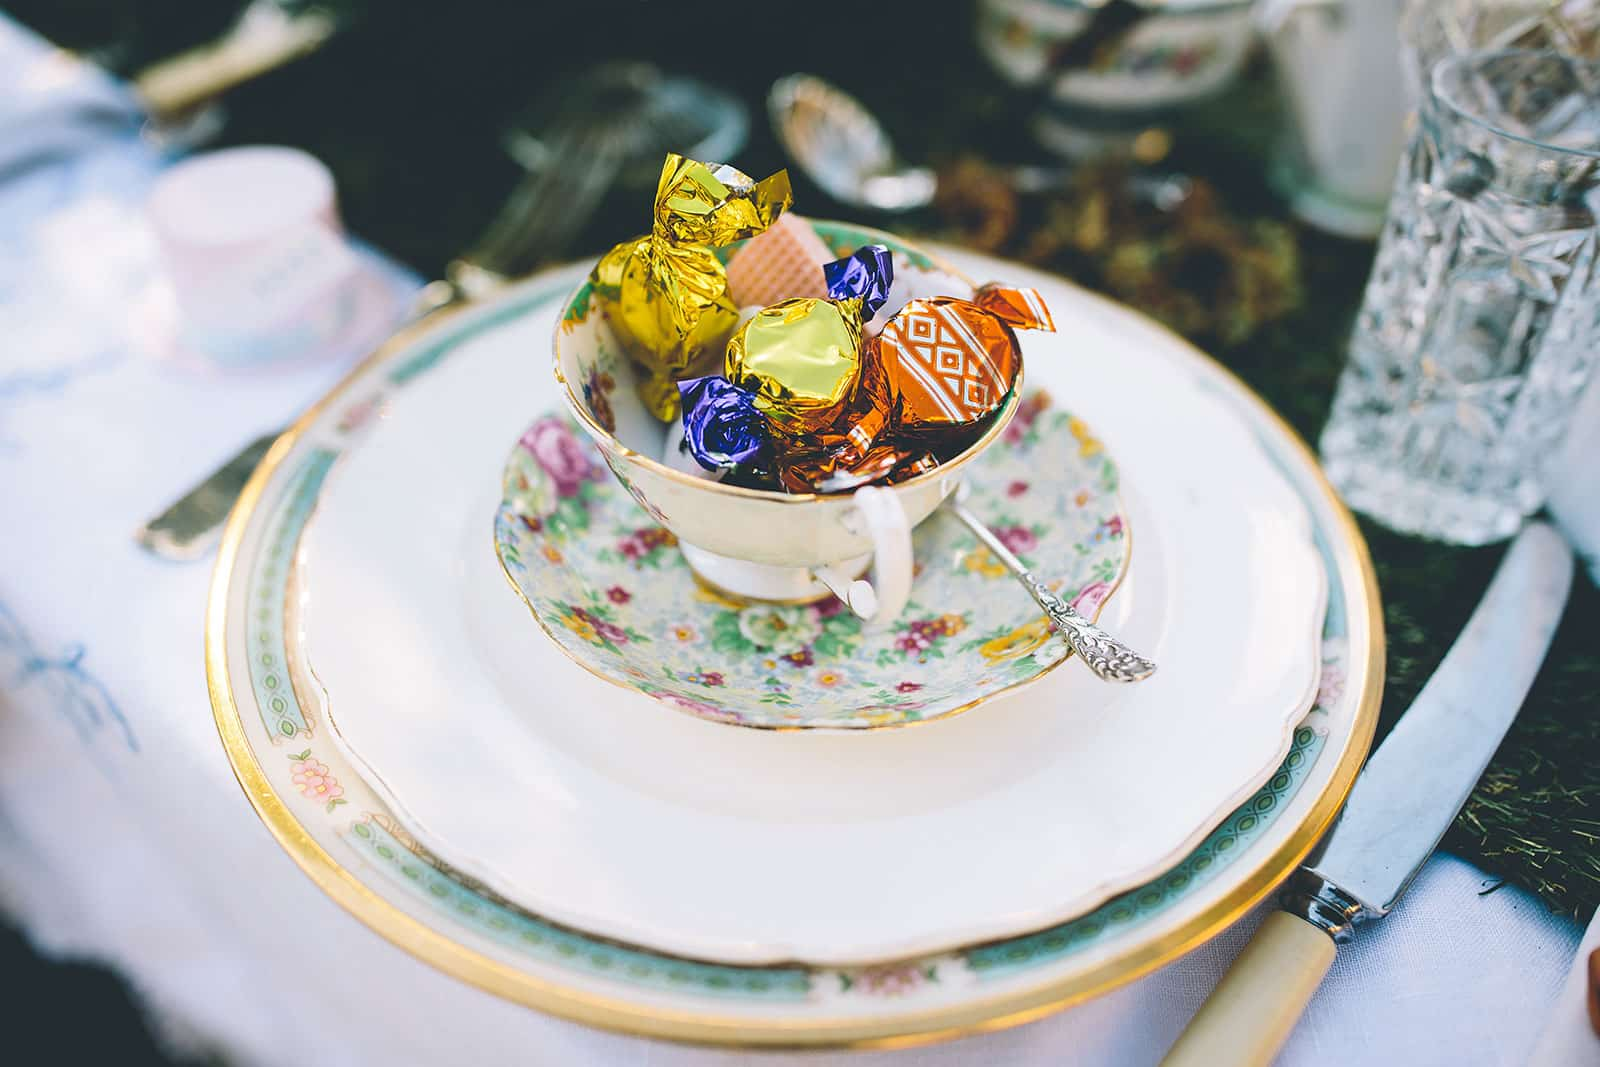 A photograph of miss match vintage china, beautiful vintage items